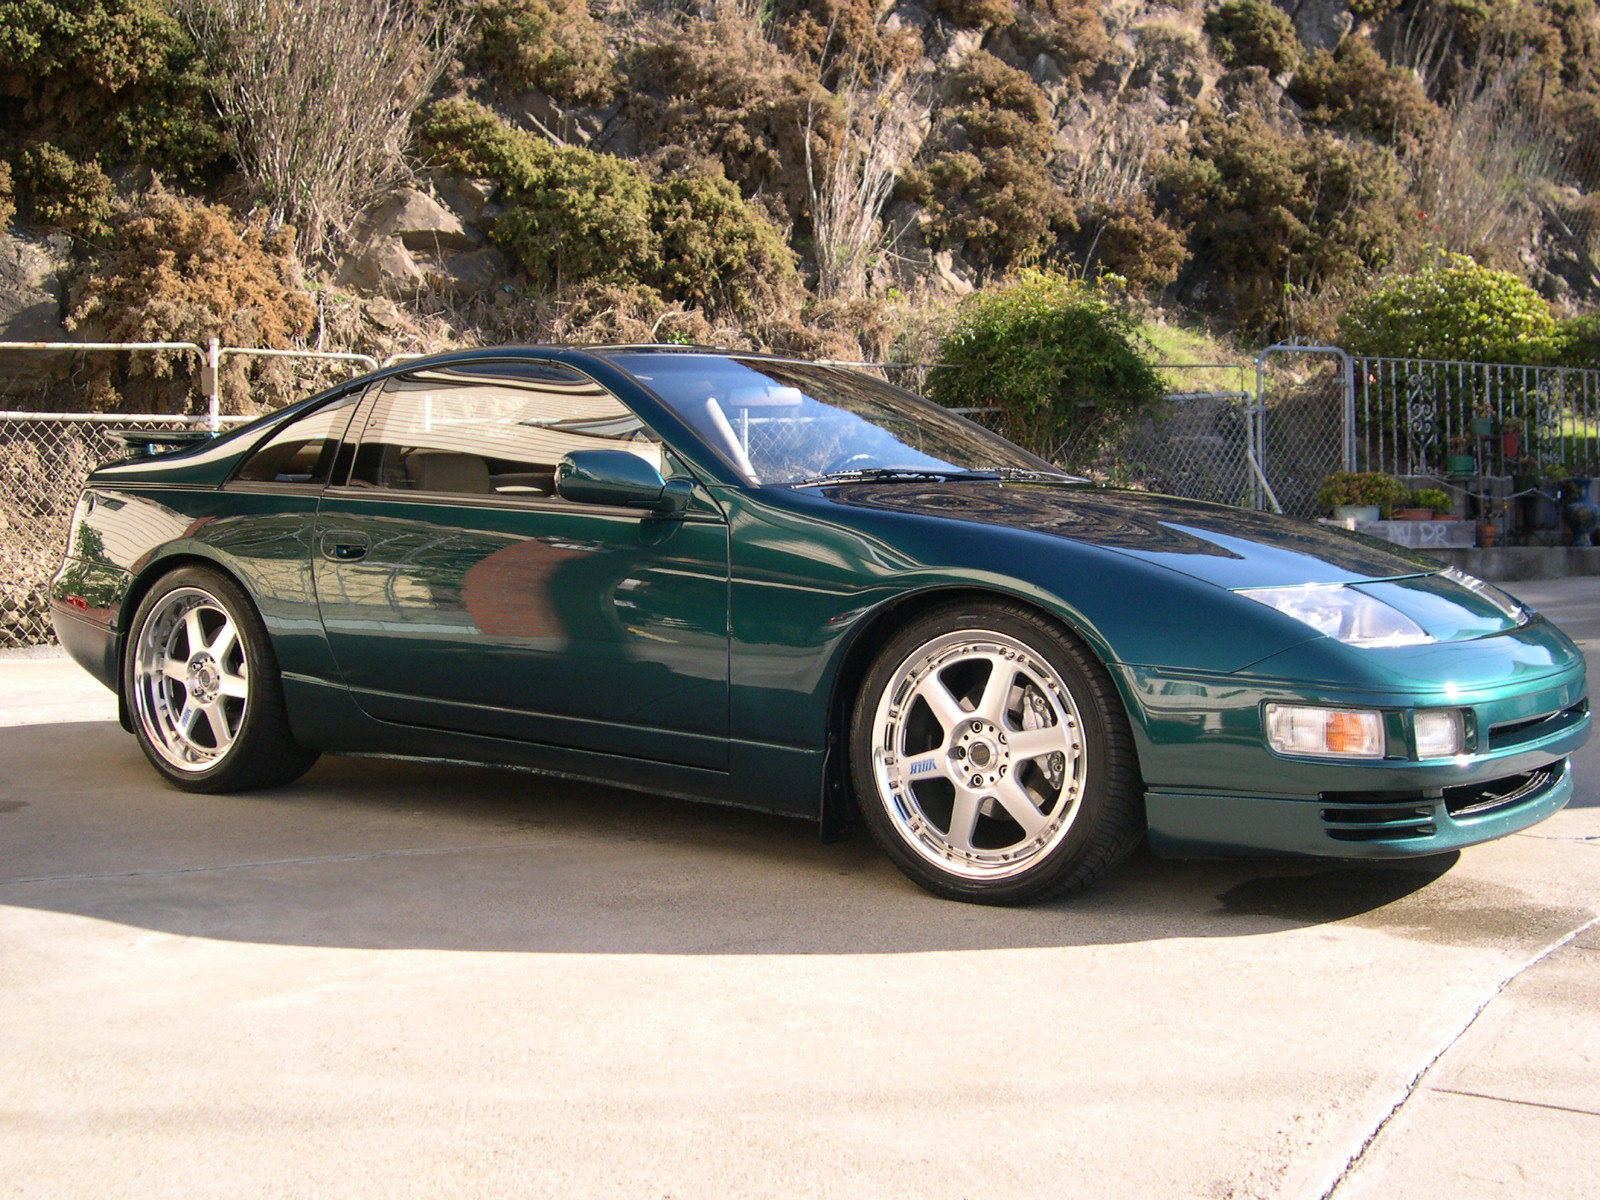 Photos Of Nissan 300zx Twin Turbo Photo Galleries On Flipacars